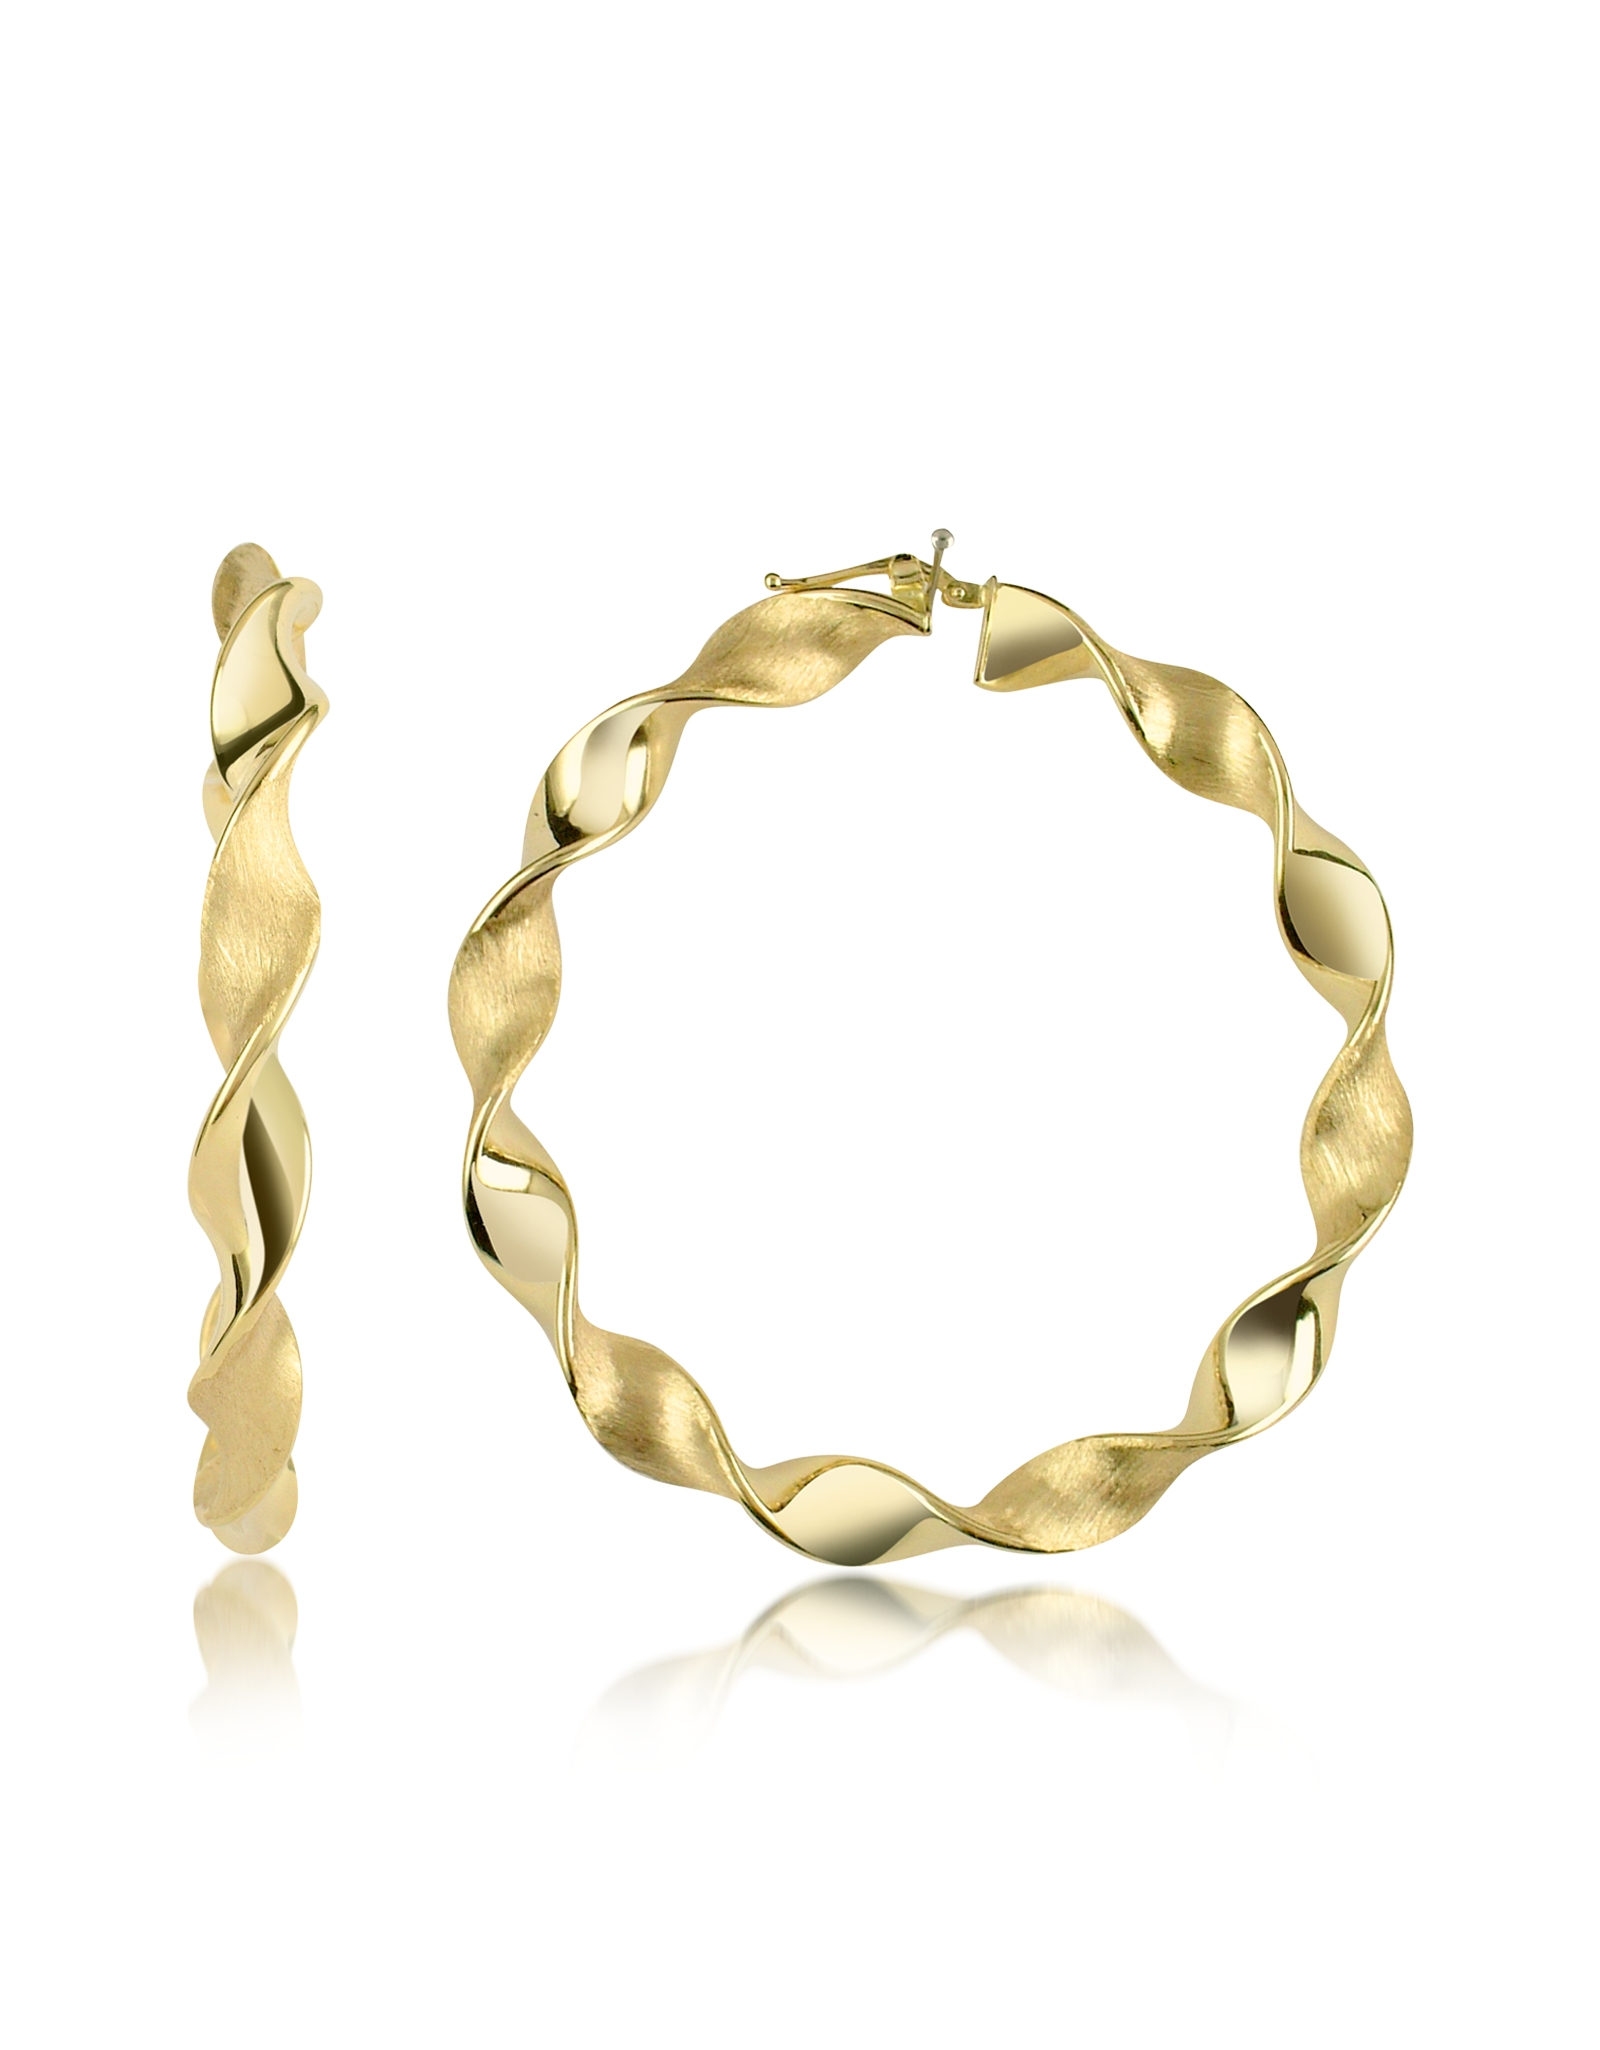 Lyst - Forzieri Large Twisting 18k Yellow Gold Hoop Earrings in Metallic